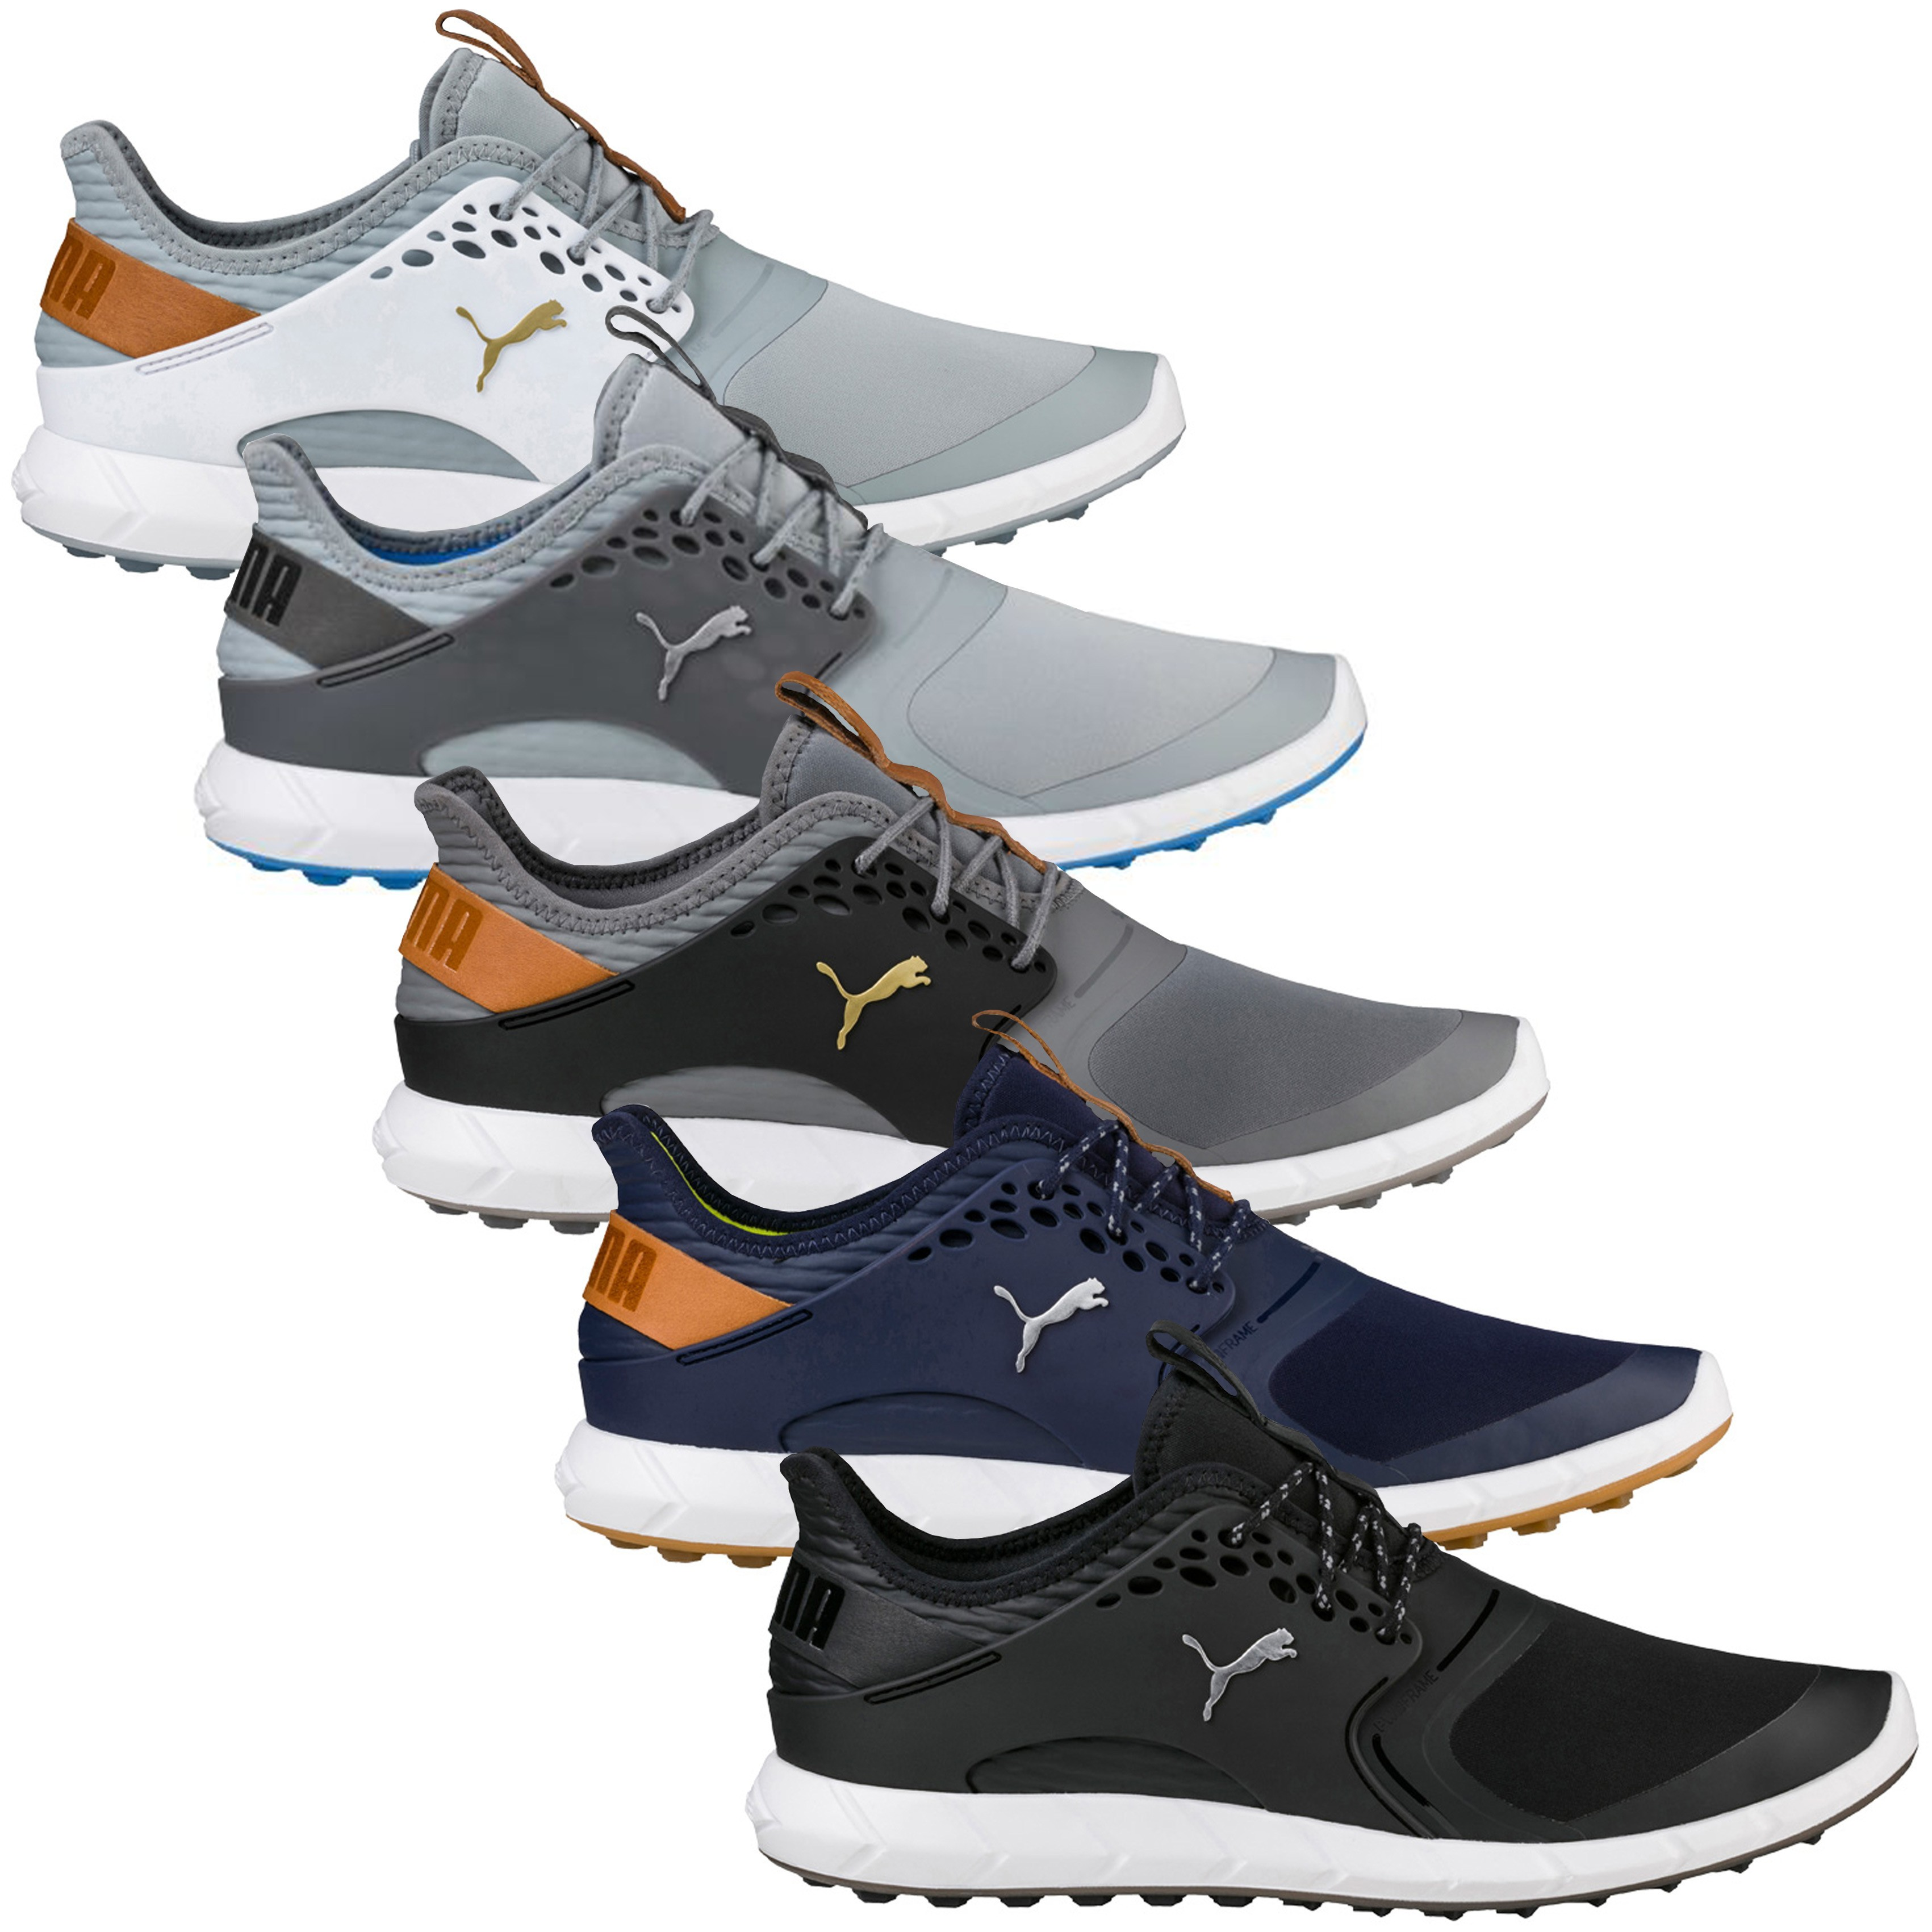 71a3a09b008525 SHARE THIS ITEM WITH YOUR FRIENDS. Watch video Size Guide. Description   Technology  Reviews0. Description. The Puma Golf Mens Ignite PWR Sport Golf  Shoes ...